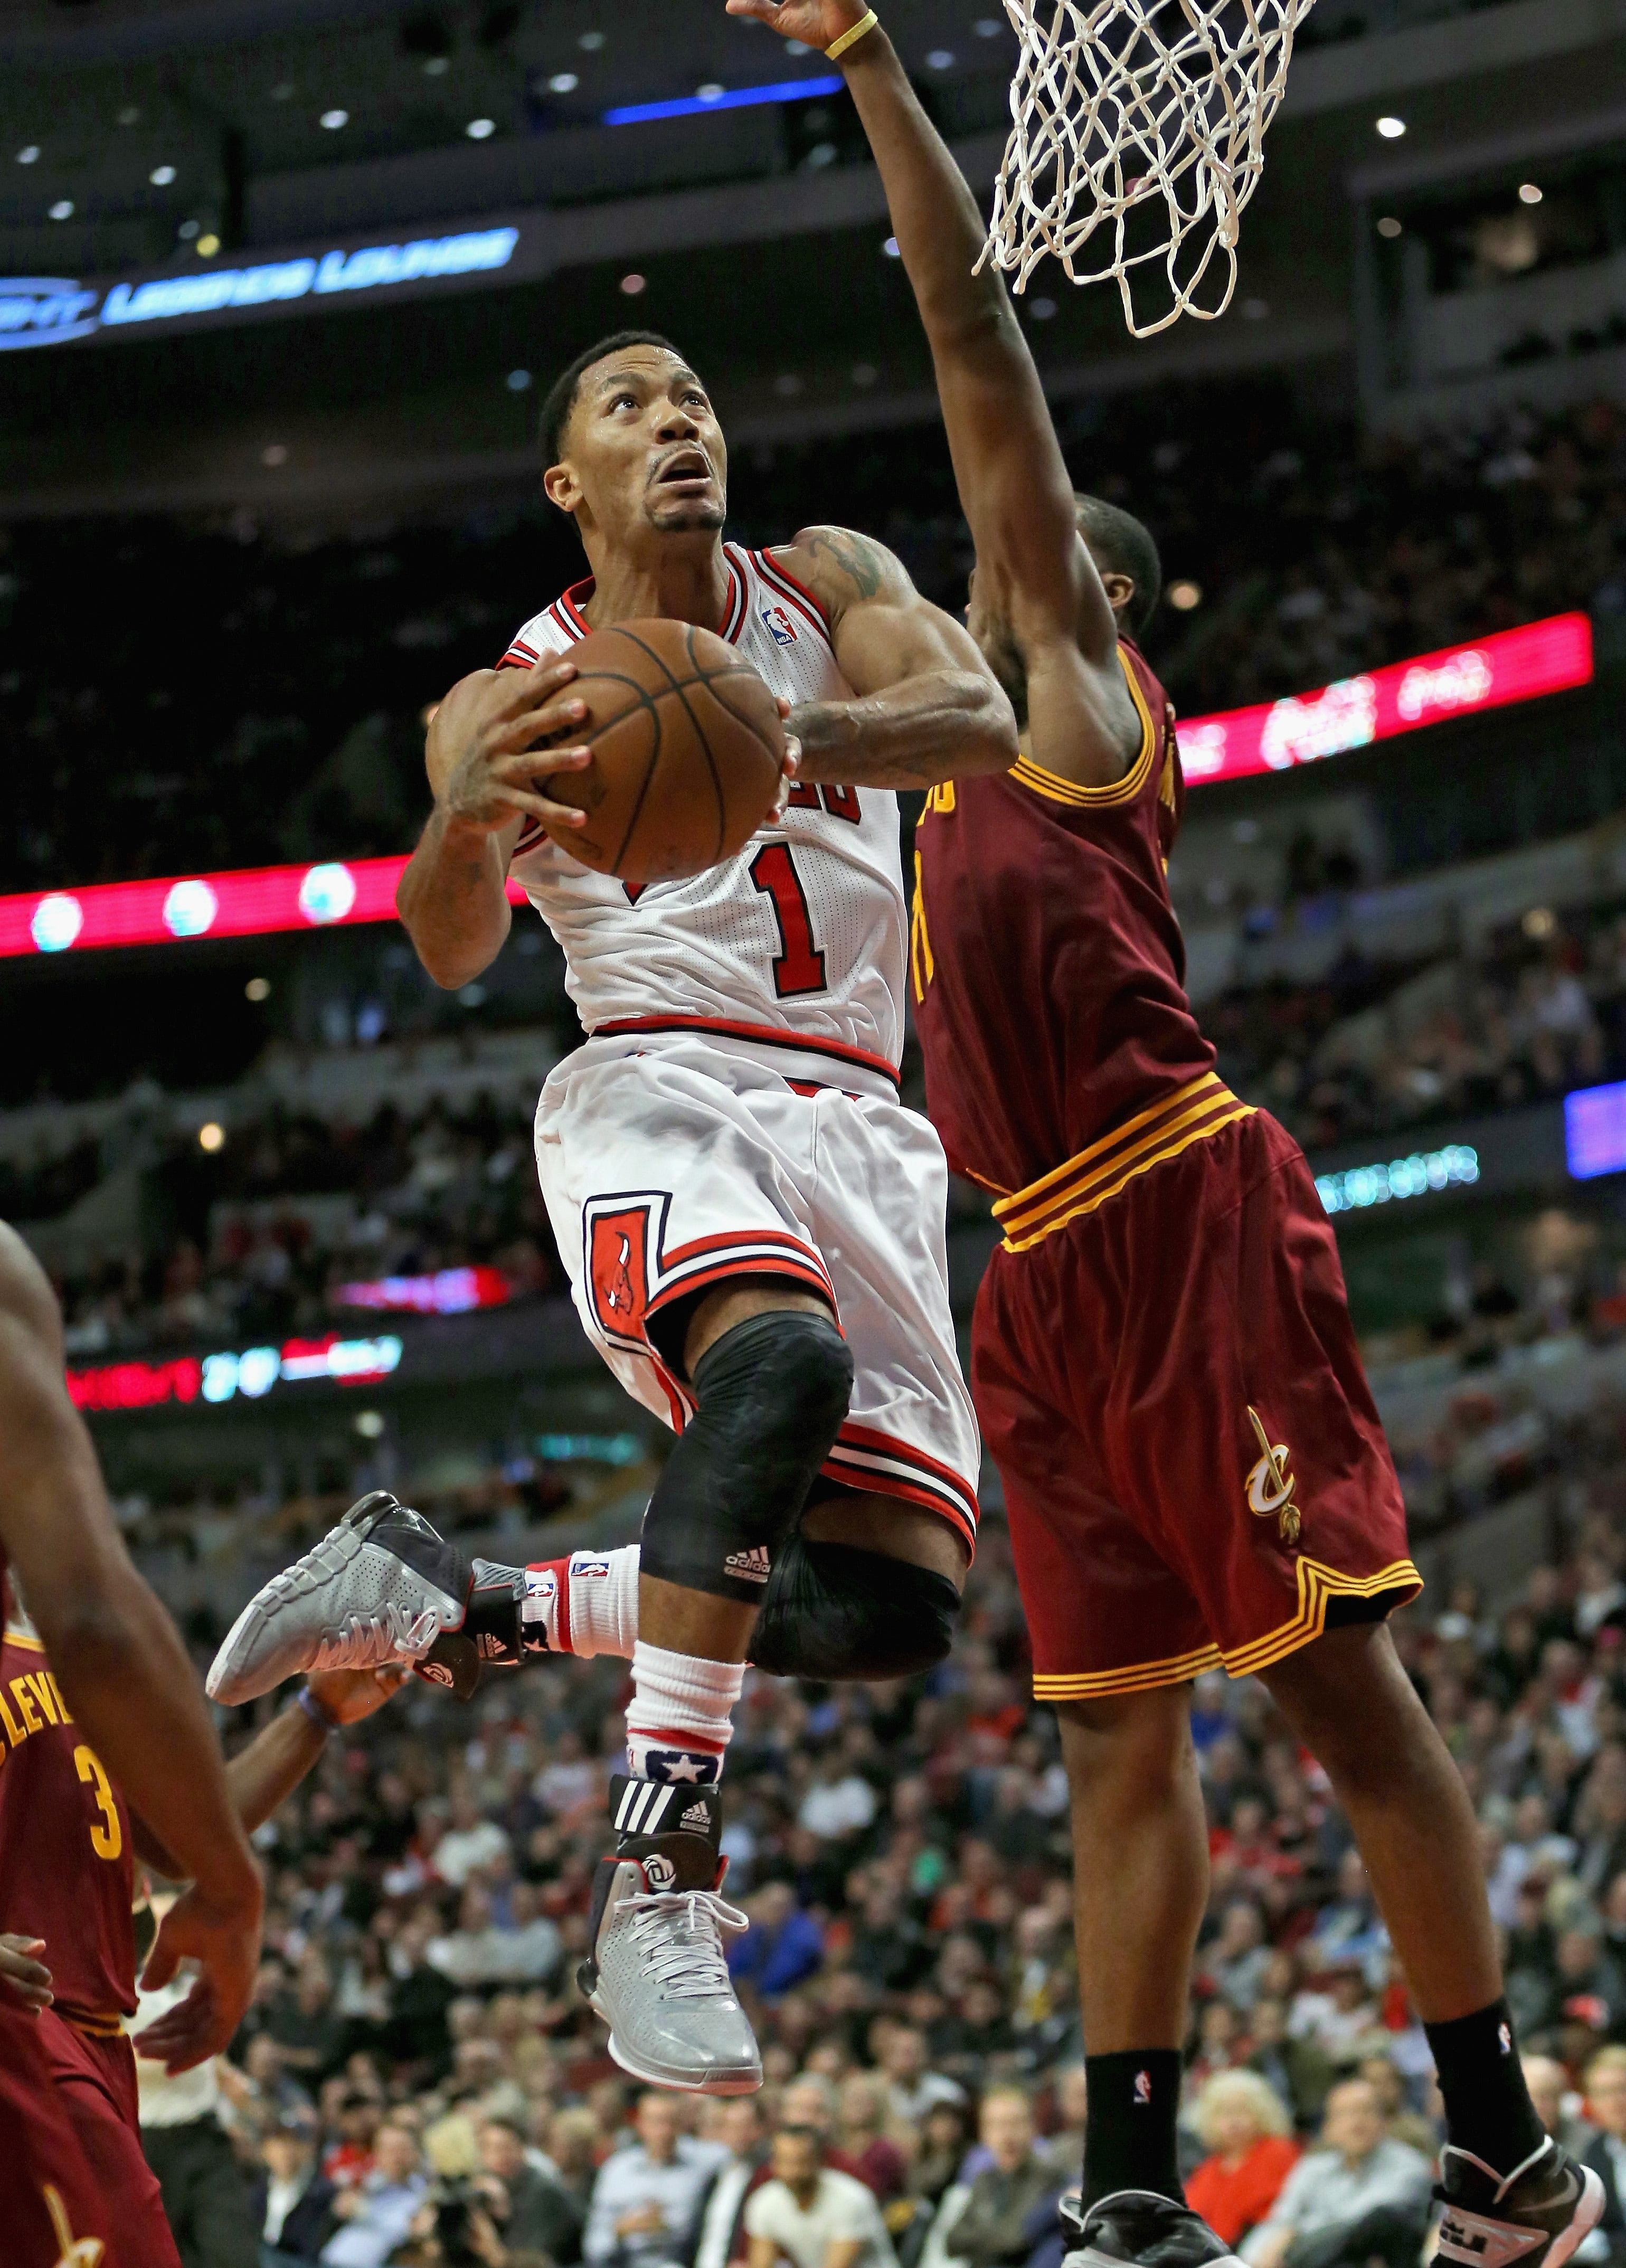 Photo gallery 2014 15 chicago bulls minnesota timberwolves - Derrick rose cavs wallpaper ...